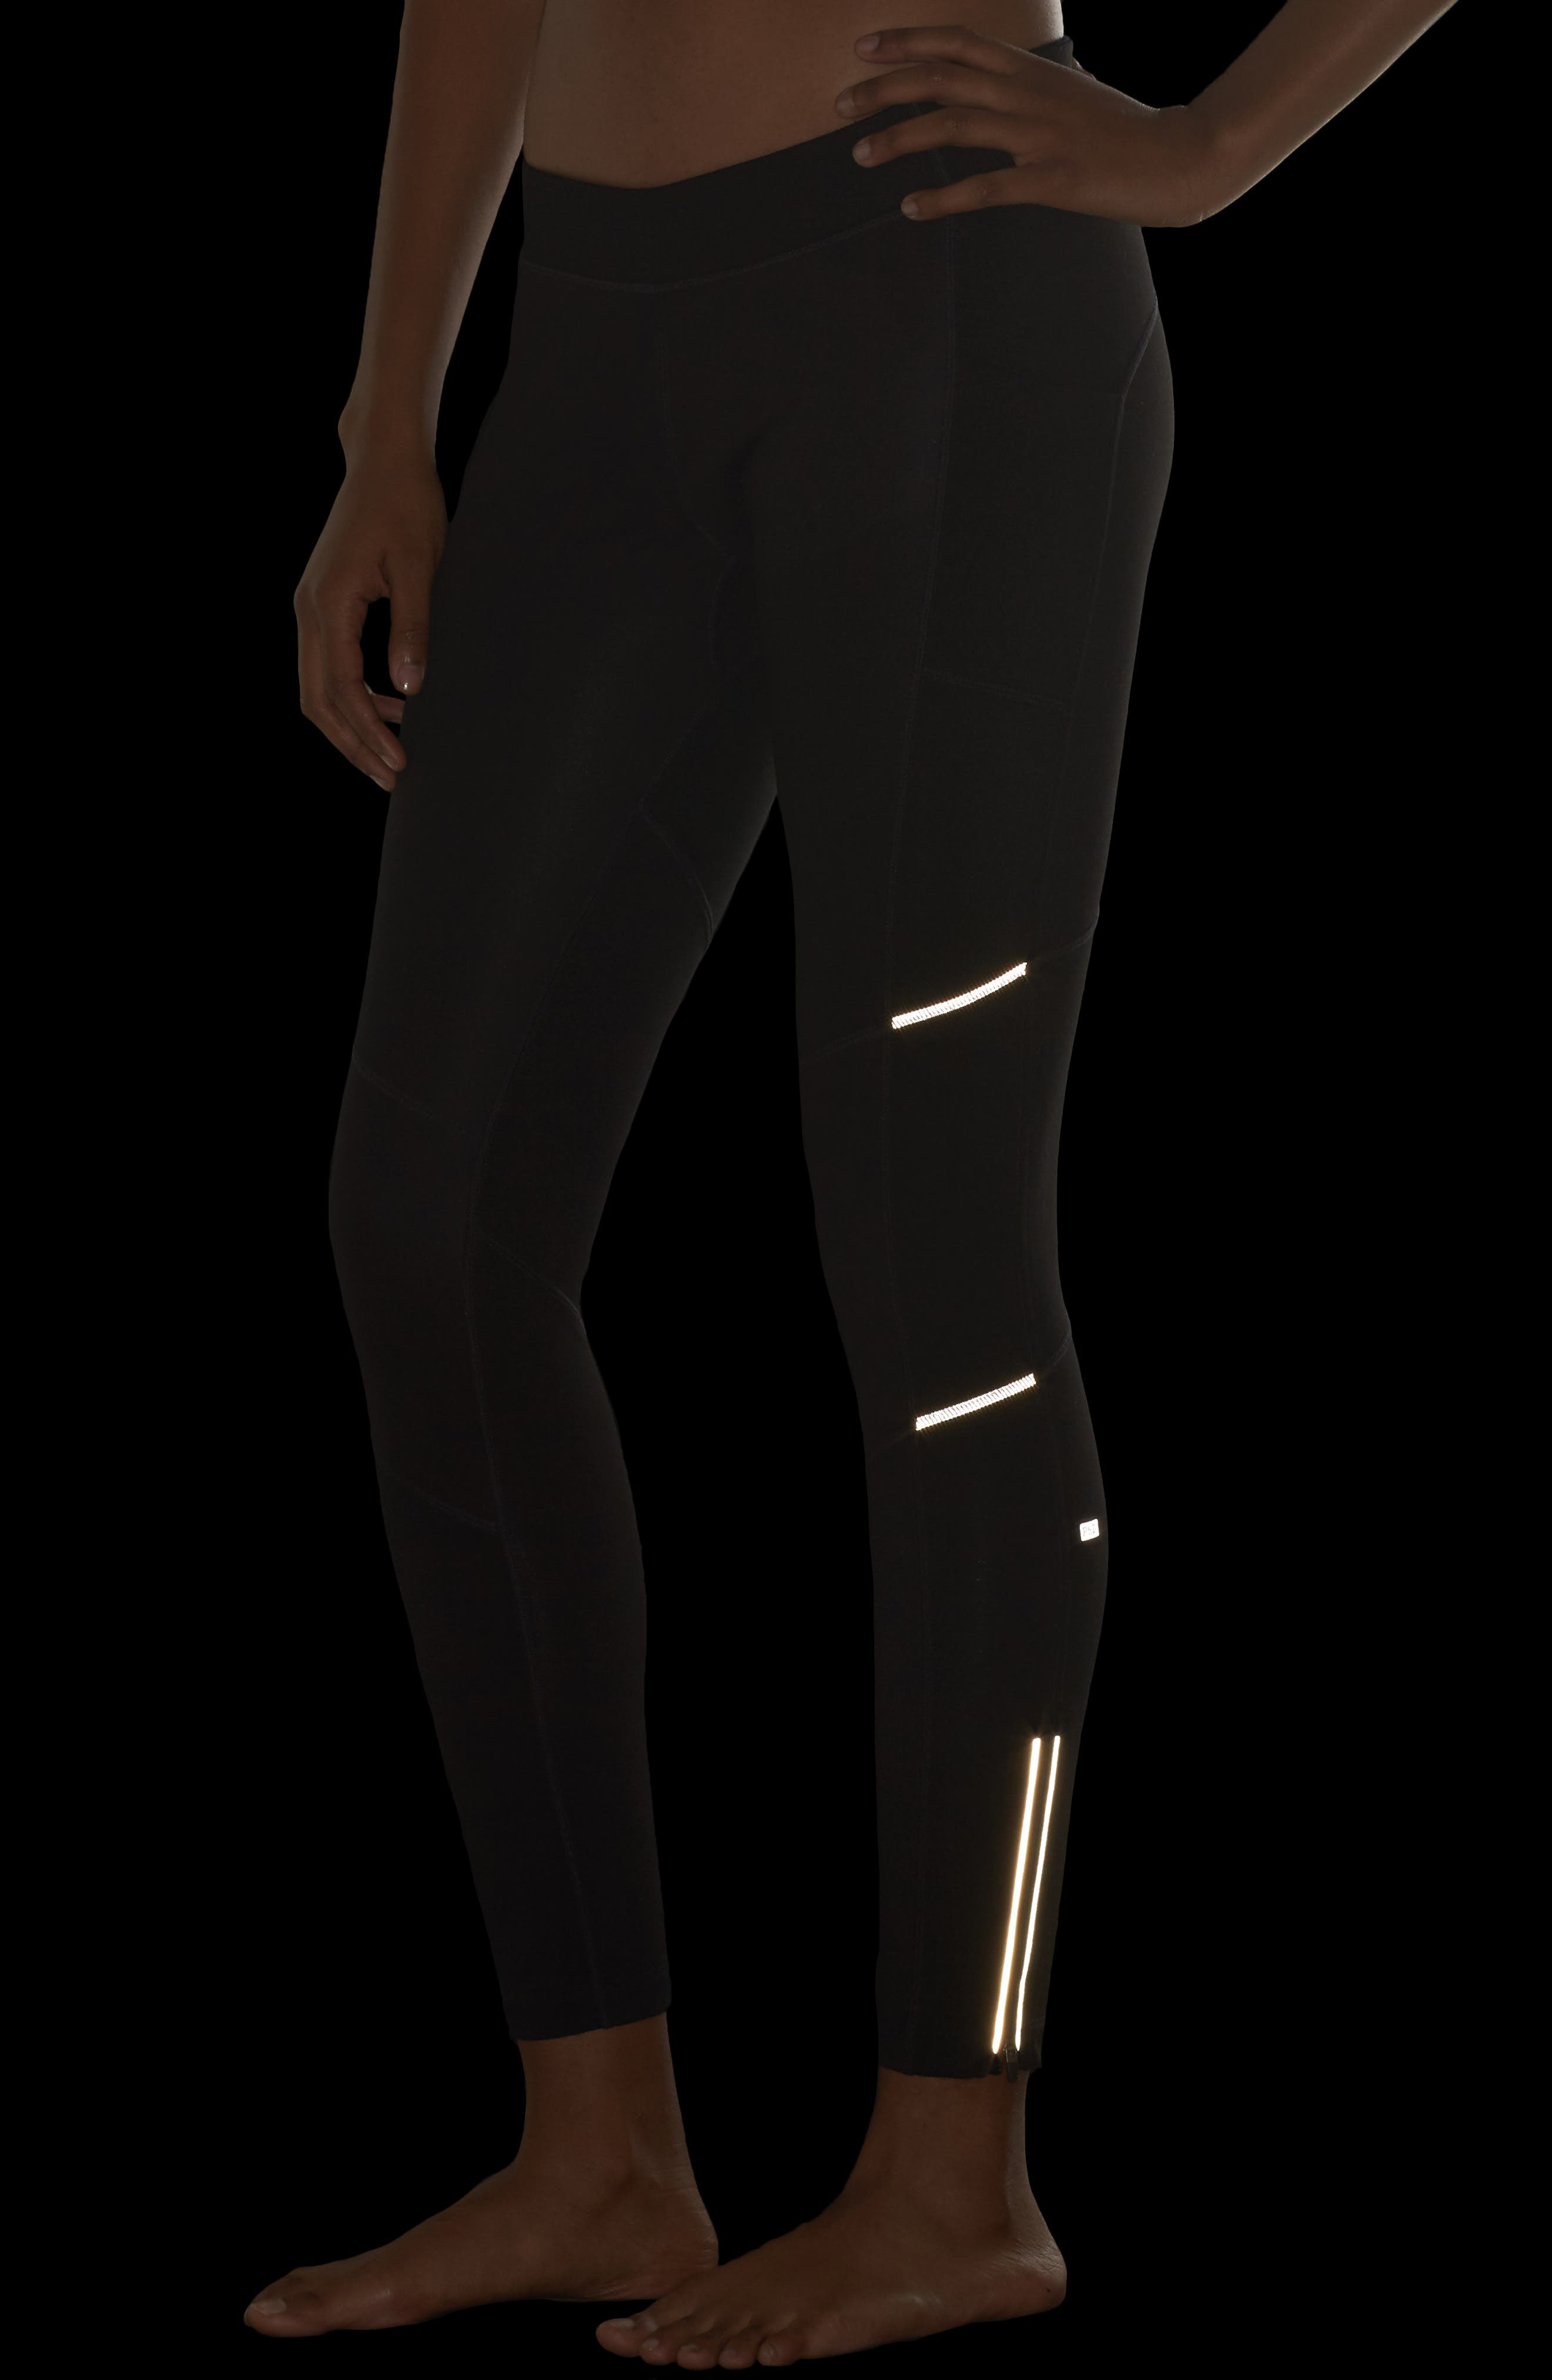 PhD Wind Tights,                             Alternate thumbnail 4, color,